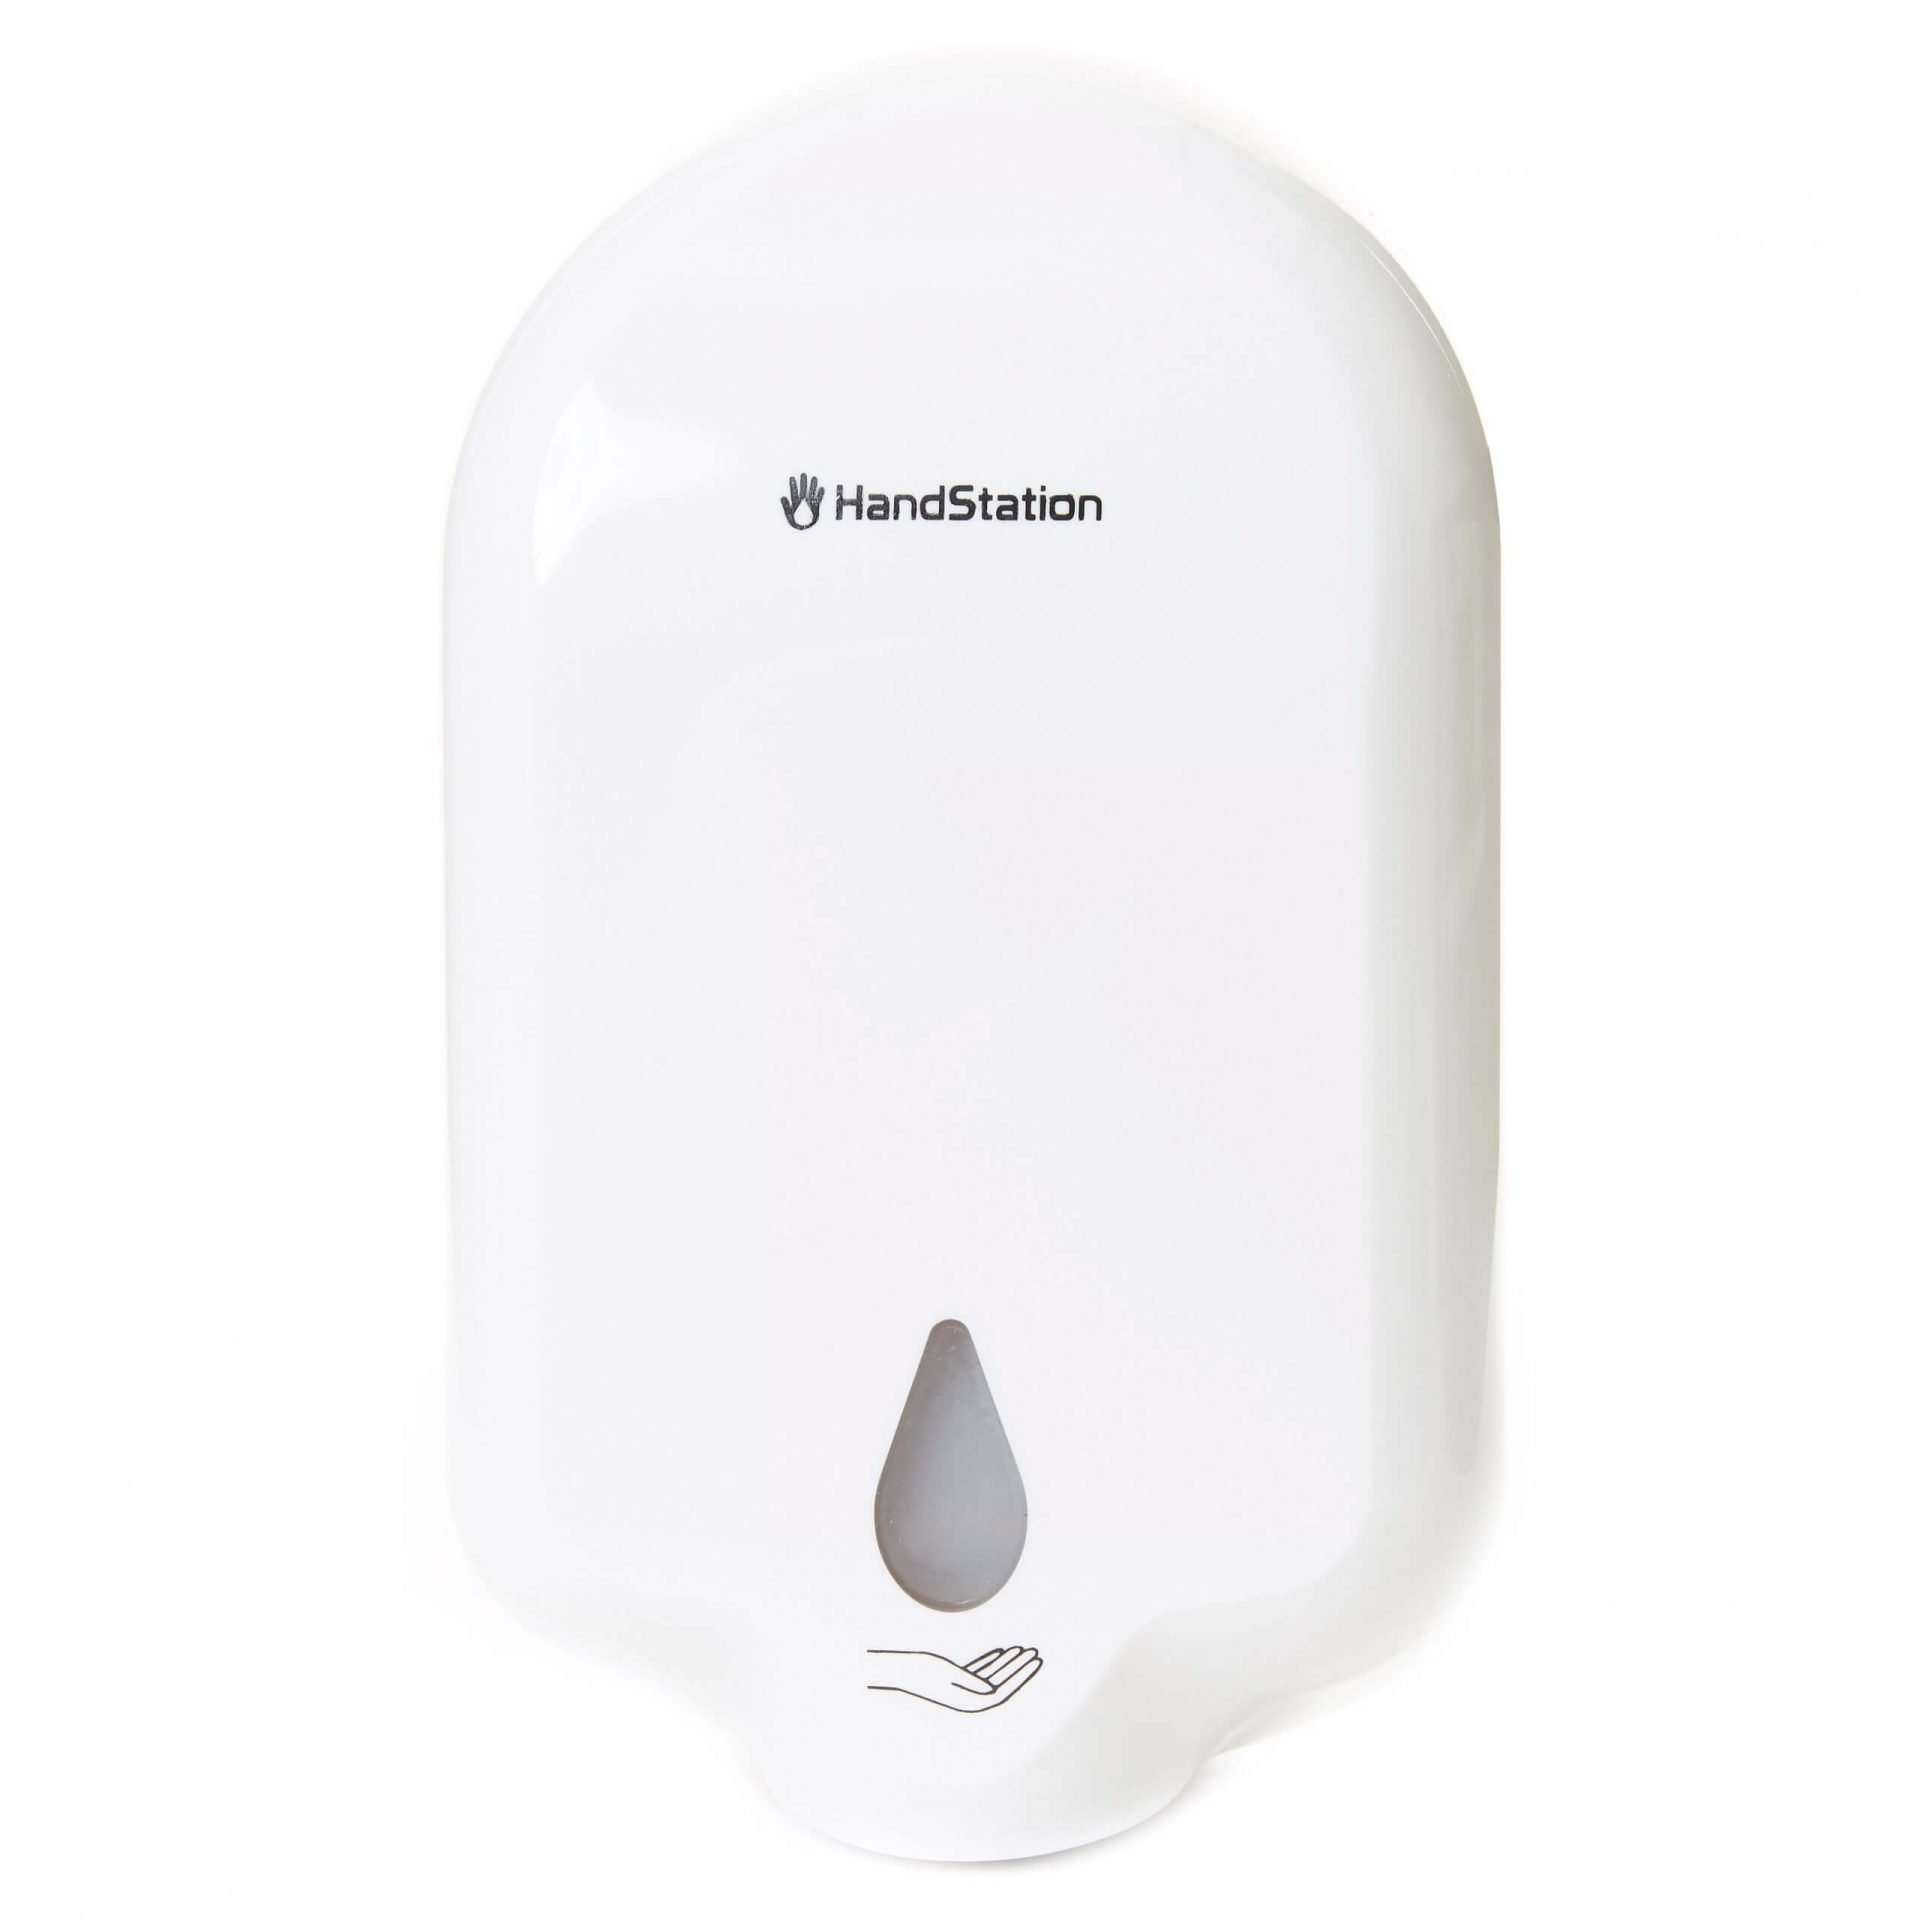 HandStation Eco Wall Mounted Automatic Touch Free Hand Sanitiser System – Liquid Dispenser